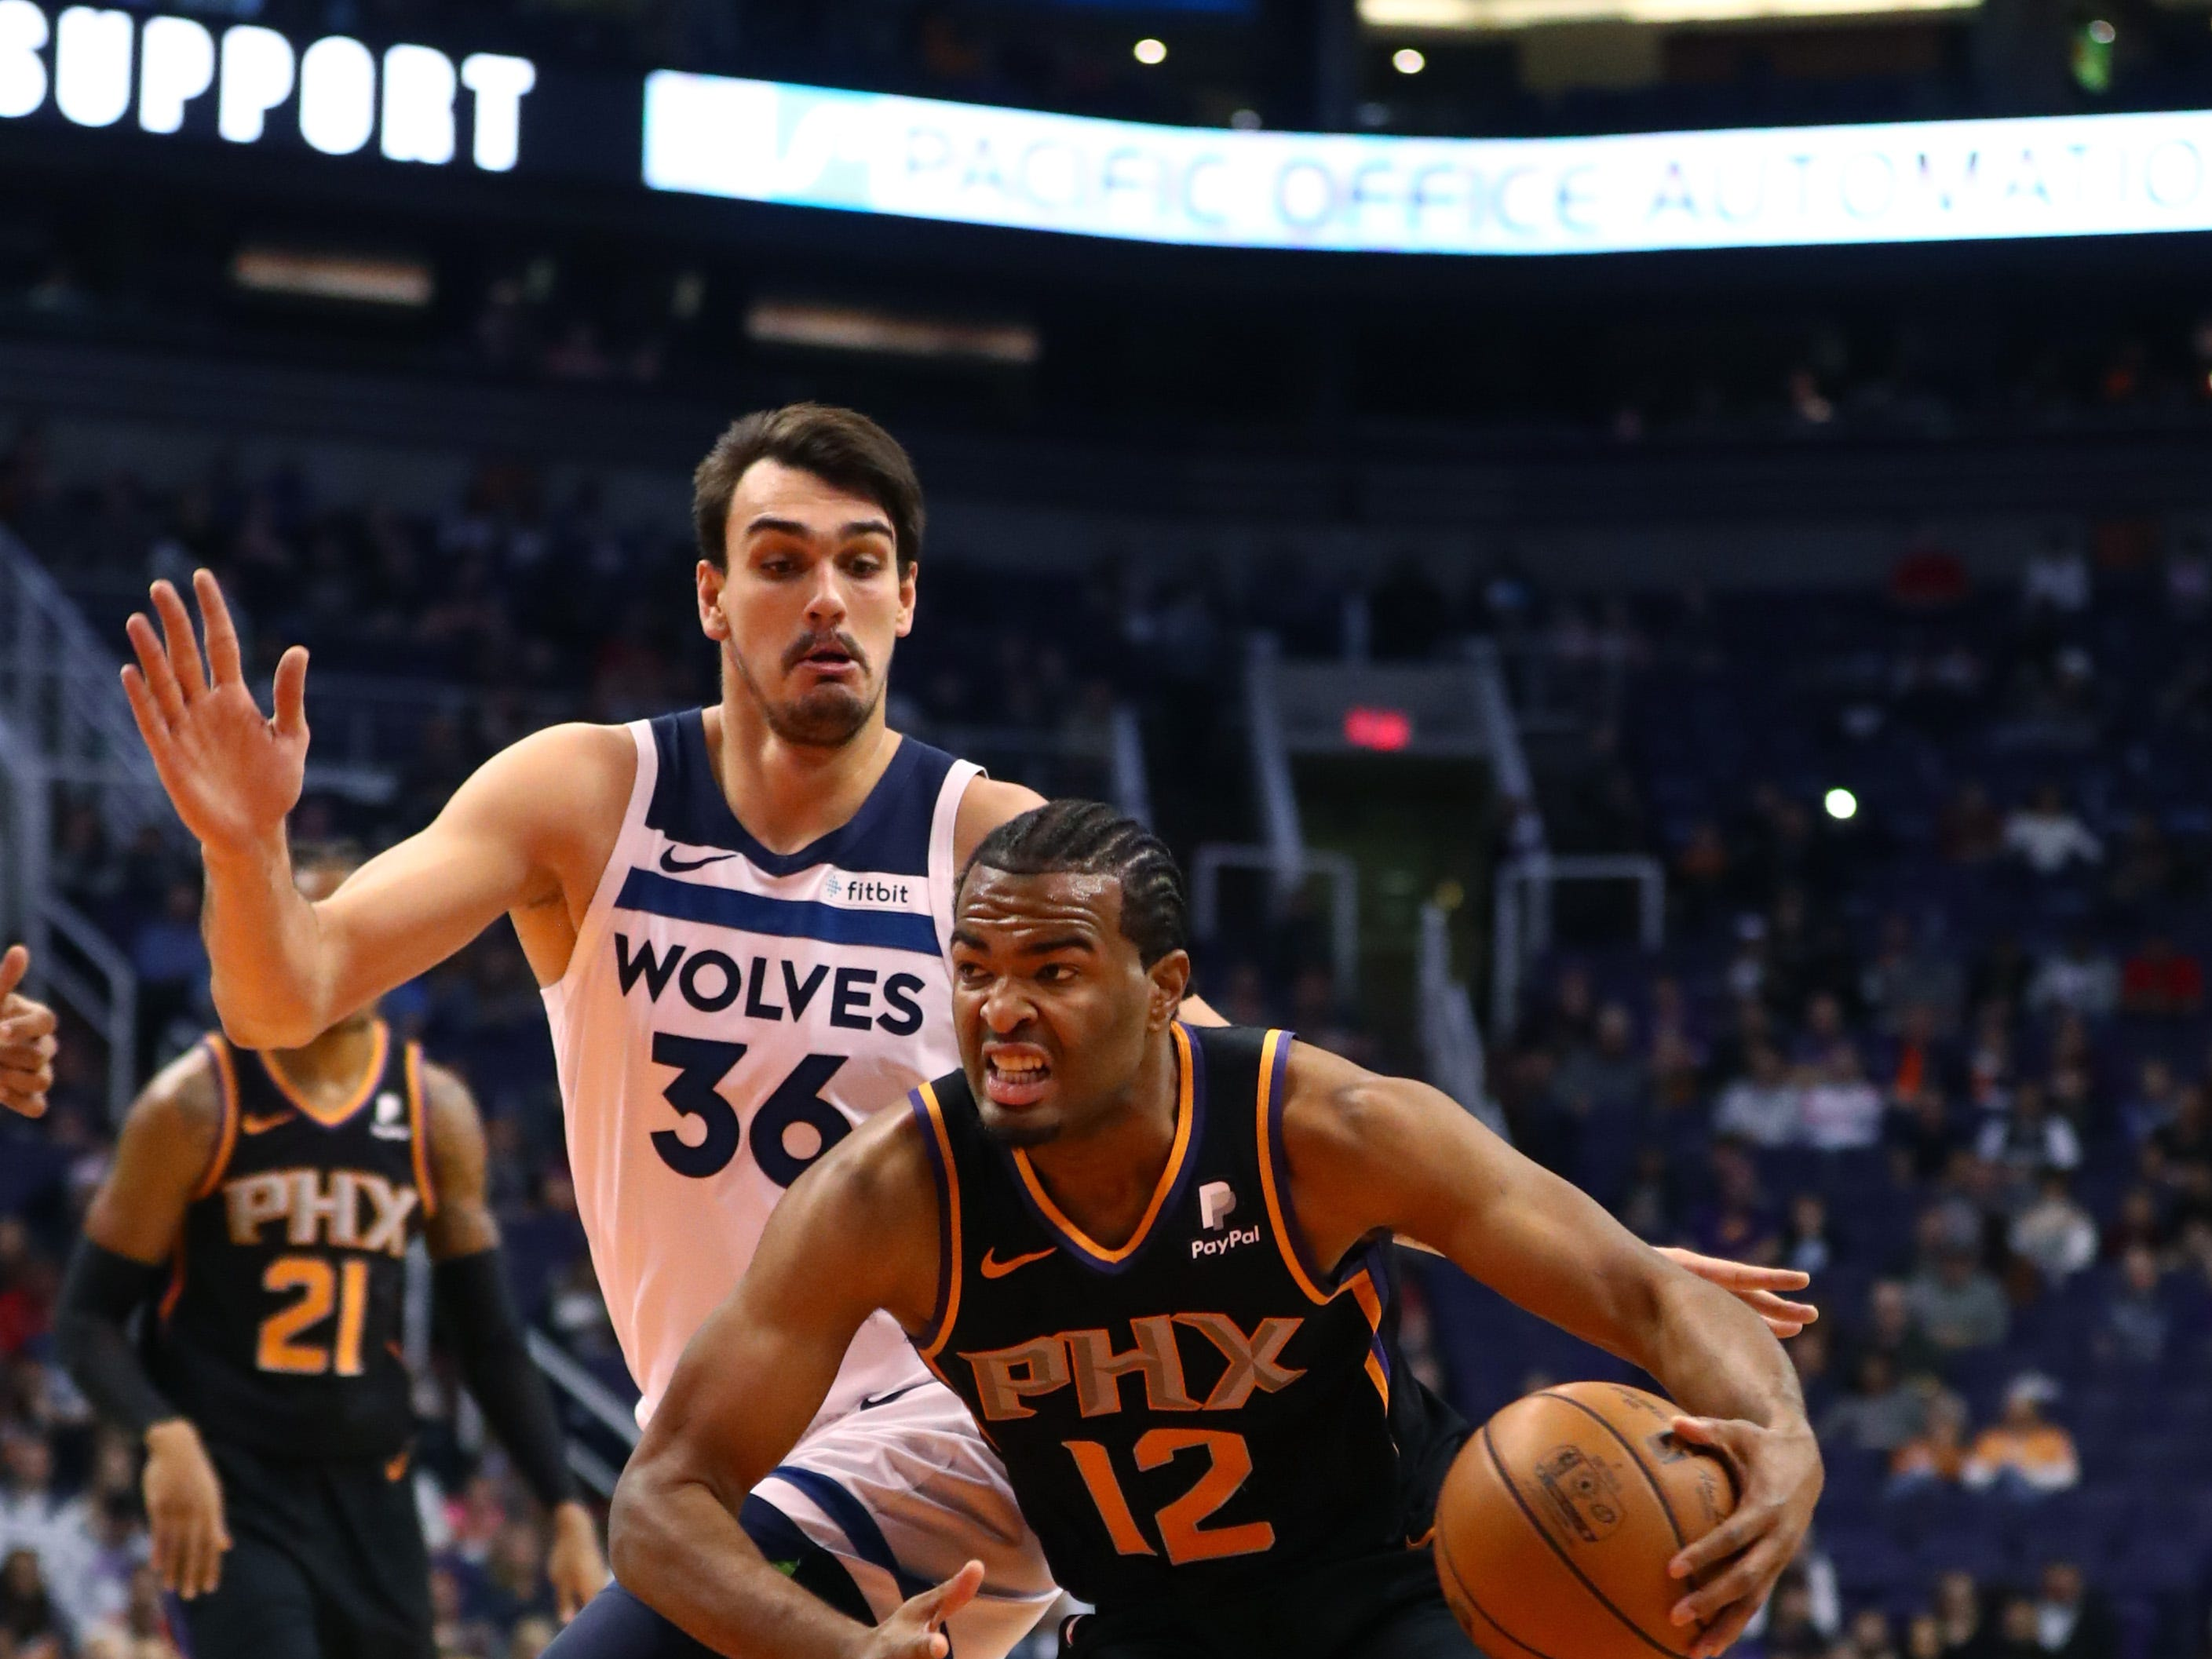 Dec 15, 2018; Phoenix, AZ, USA; Phoenix Suns forward TJ Warren (12) drives to the basket against Minnesota Timberwolves forward Dario Saric (36) in the first half at Talking Stick Resort Arena. Mandatory Credit: Mark J. Rebilas-USA TODAY Sports